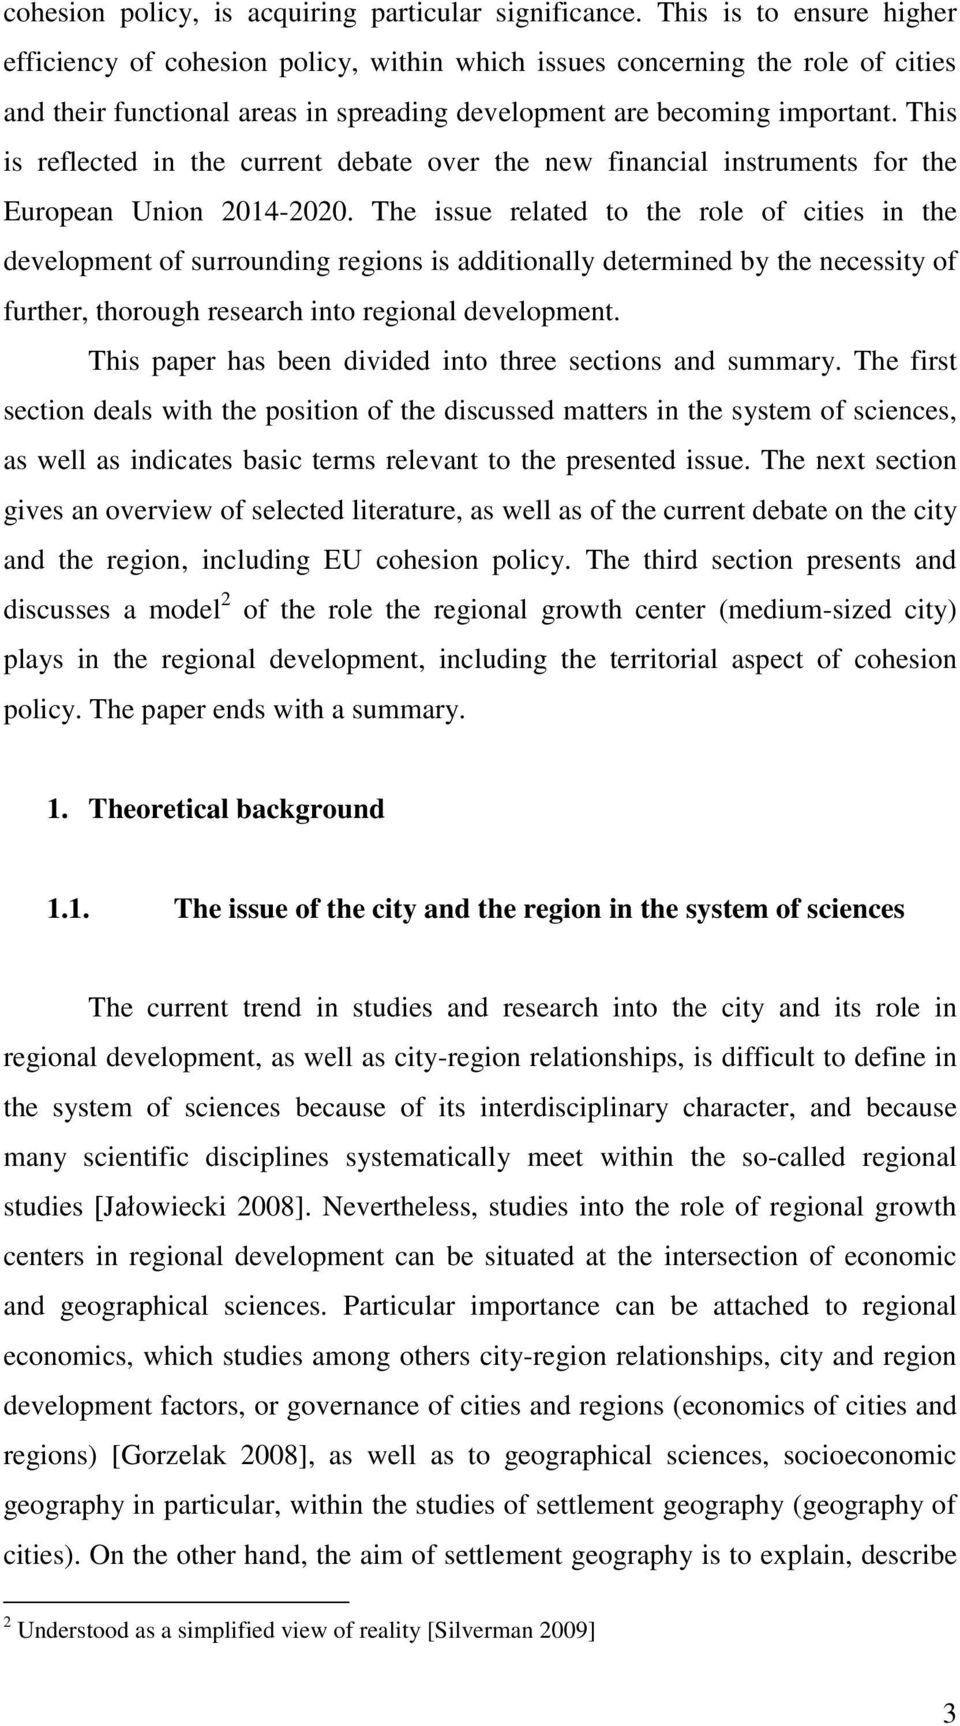 This is reflected in the current debate over the new financial instruments for the European Union 2014-2020.